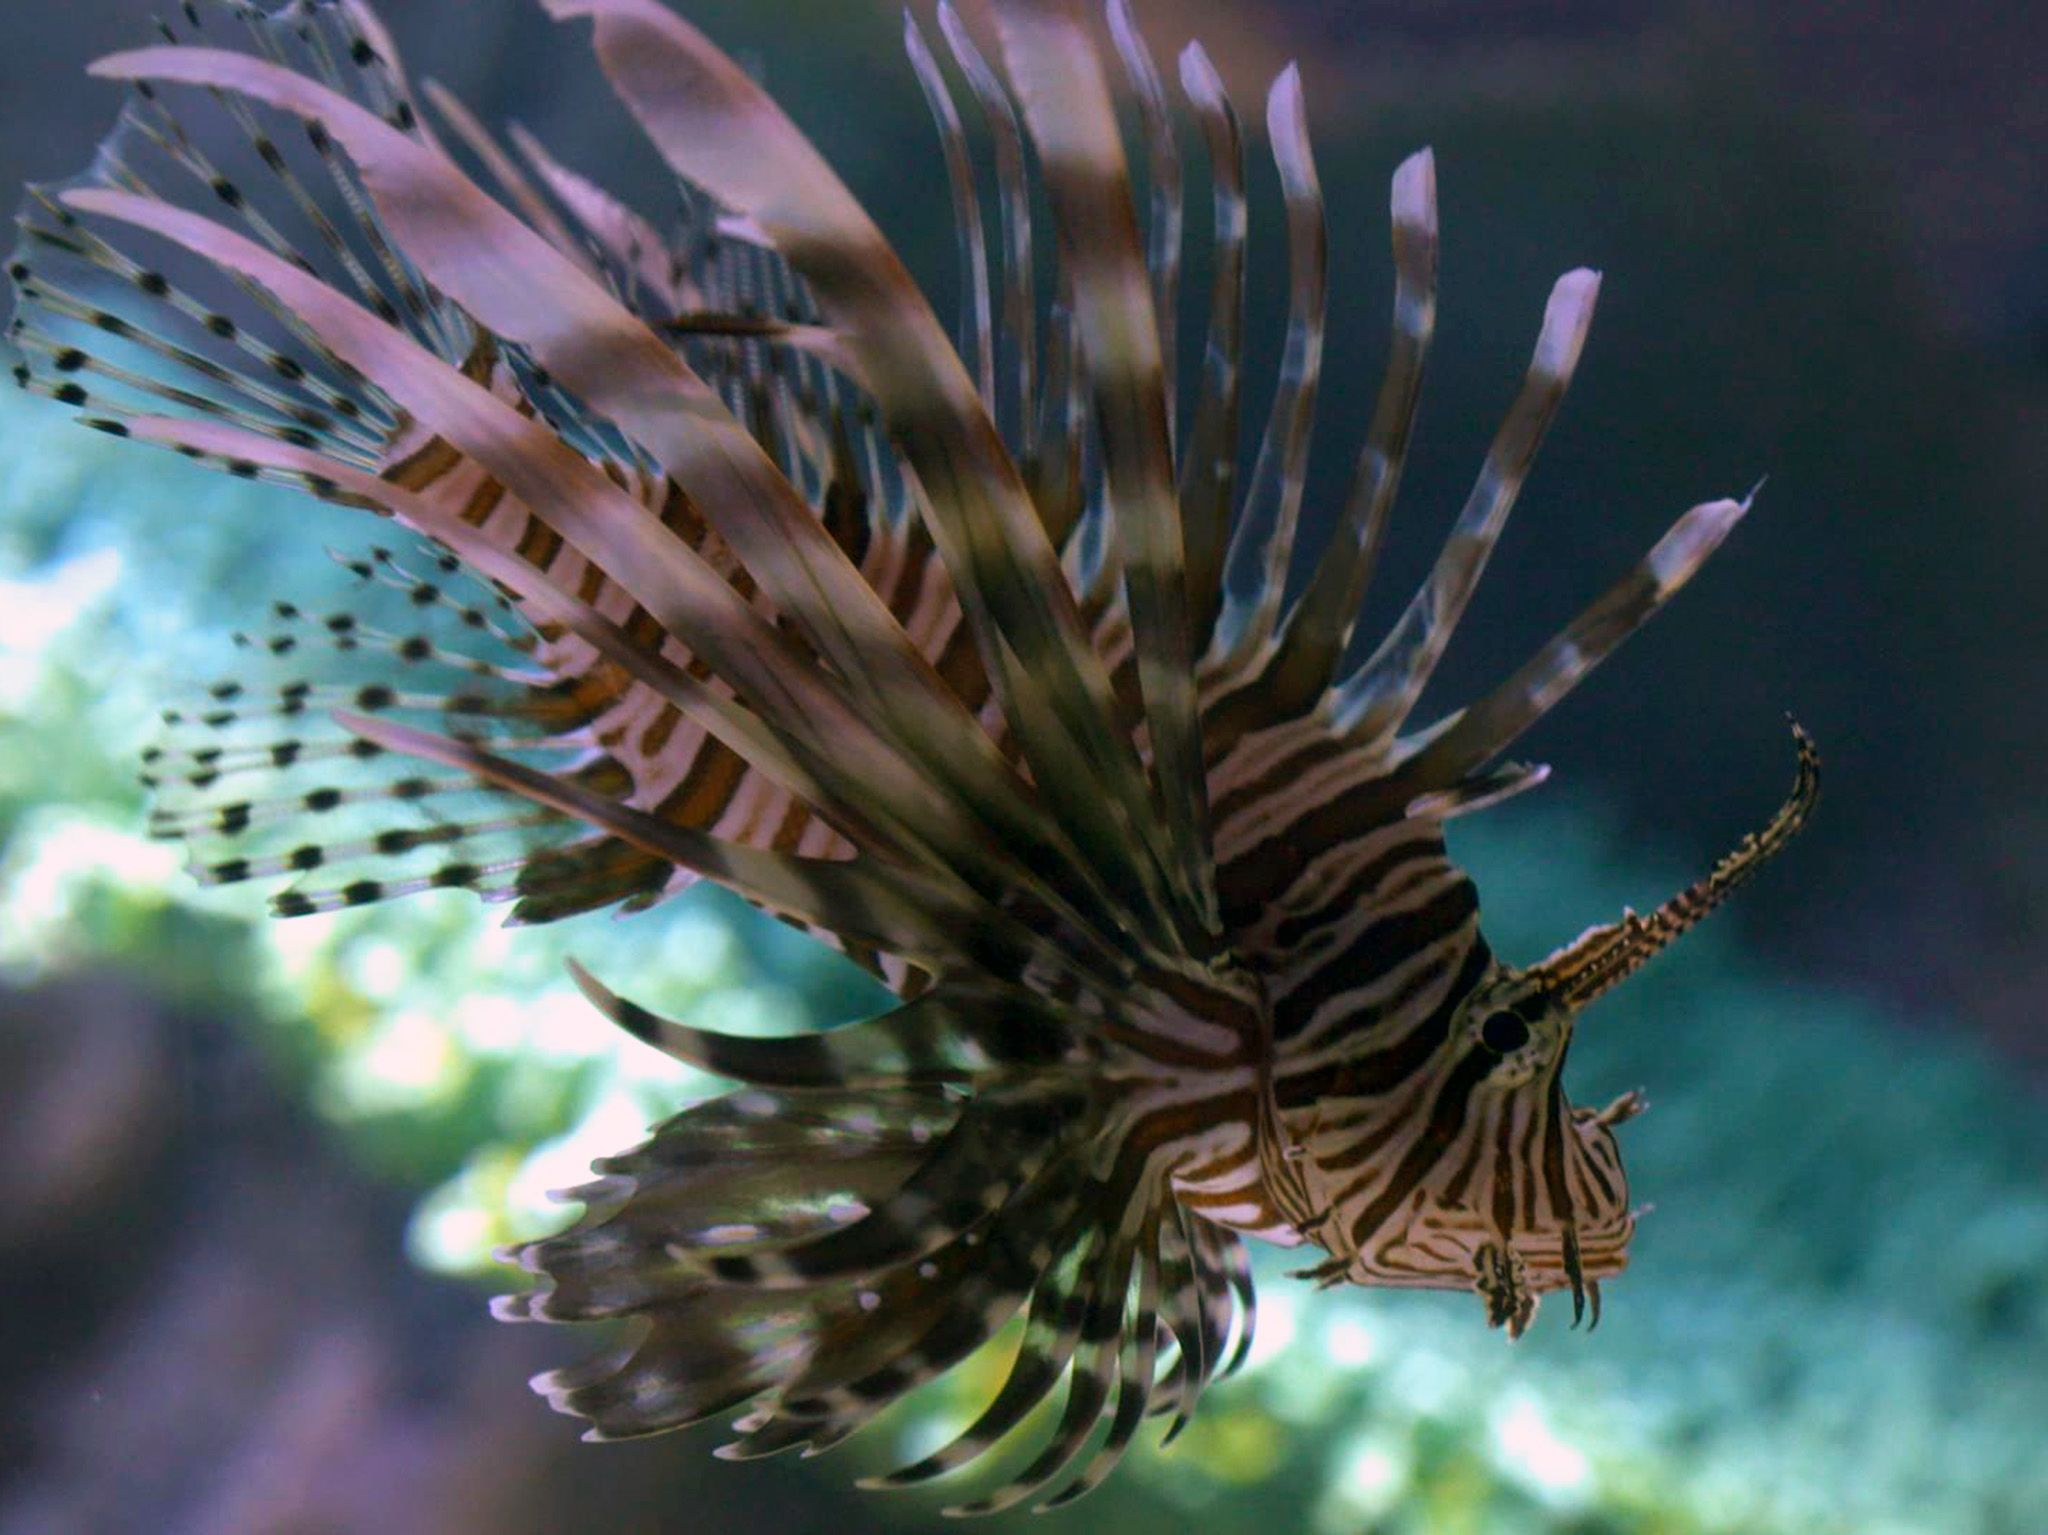 Cancun, Mexico:  A lionfish swims in its tank at the Interactive Aquarium Cancun.  This image is... [Photo of the day - 五月 2018]